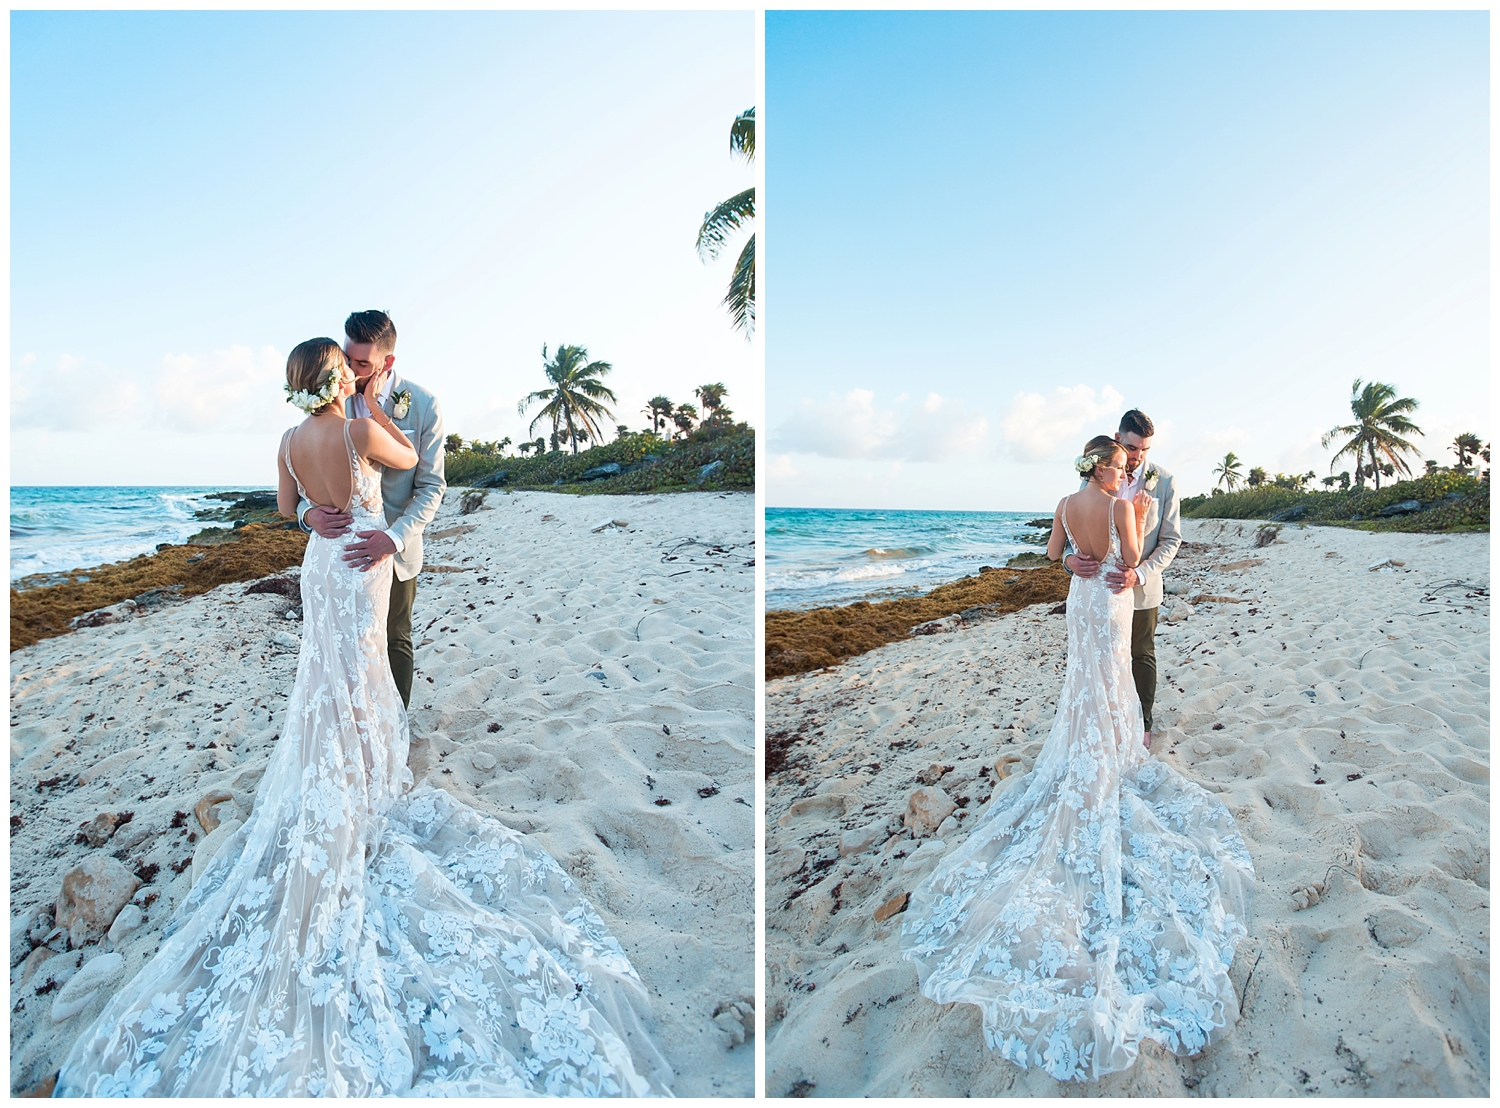 Kelsey and Taylor's Mexico Xcaret Destination Wedding_0119.jpg